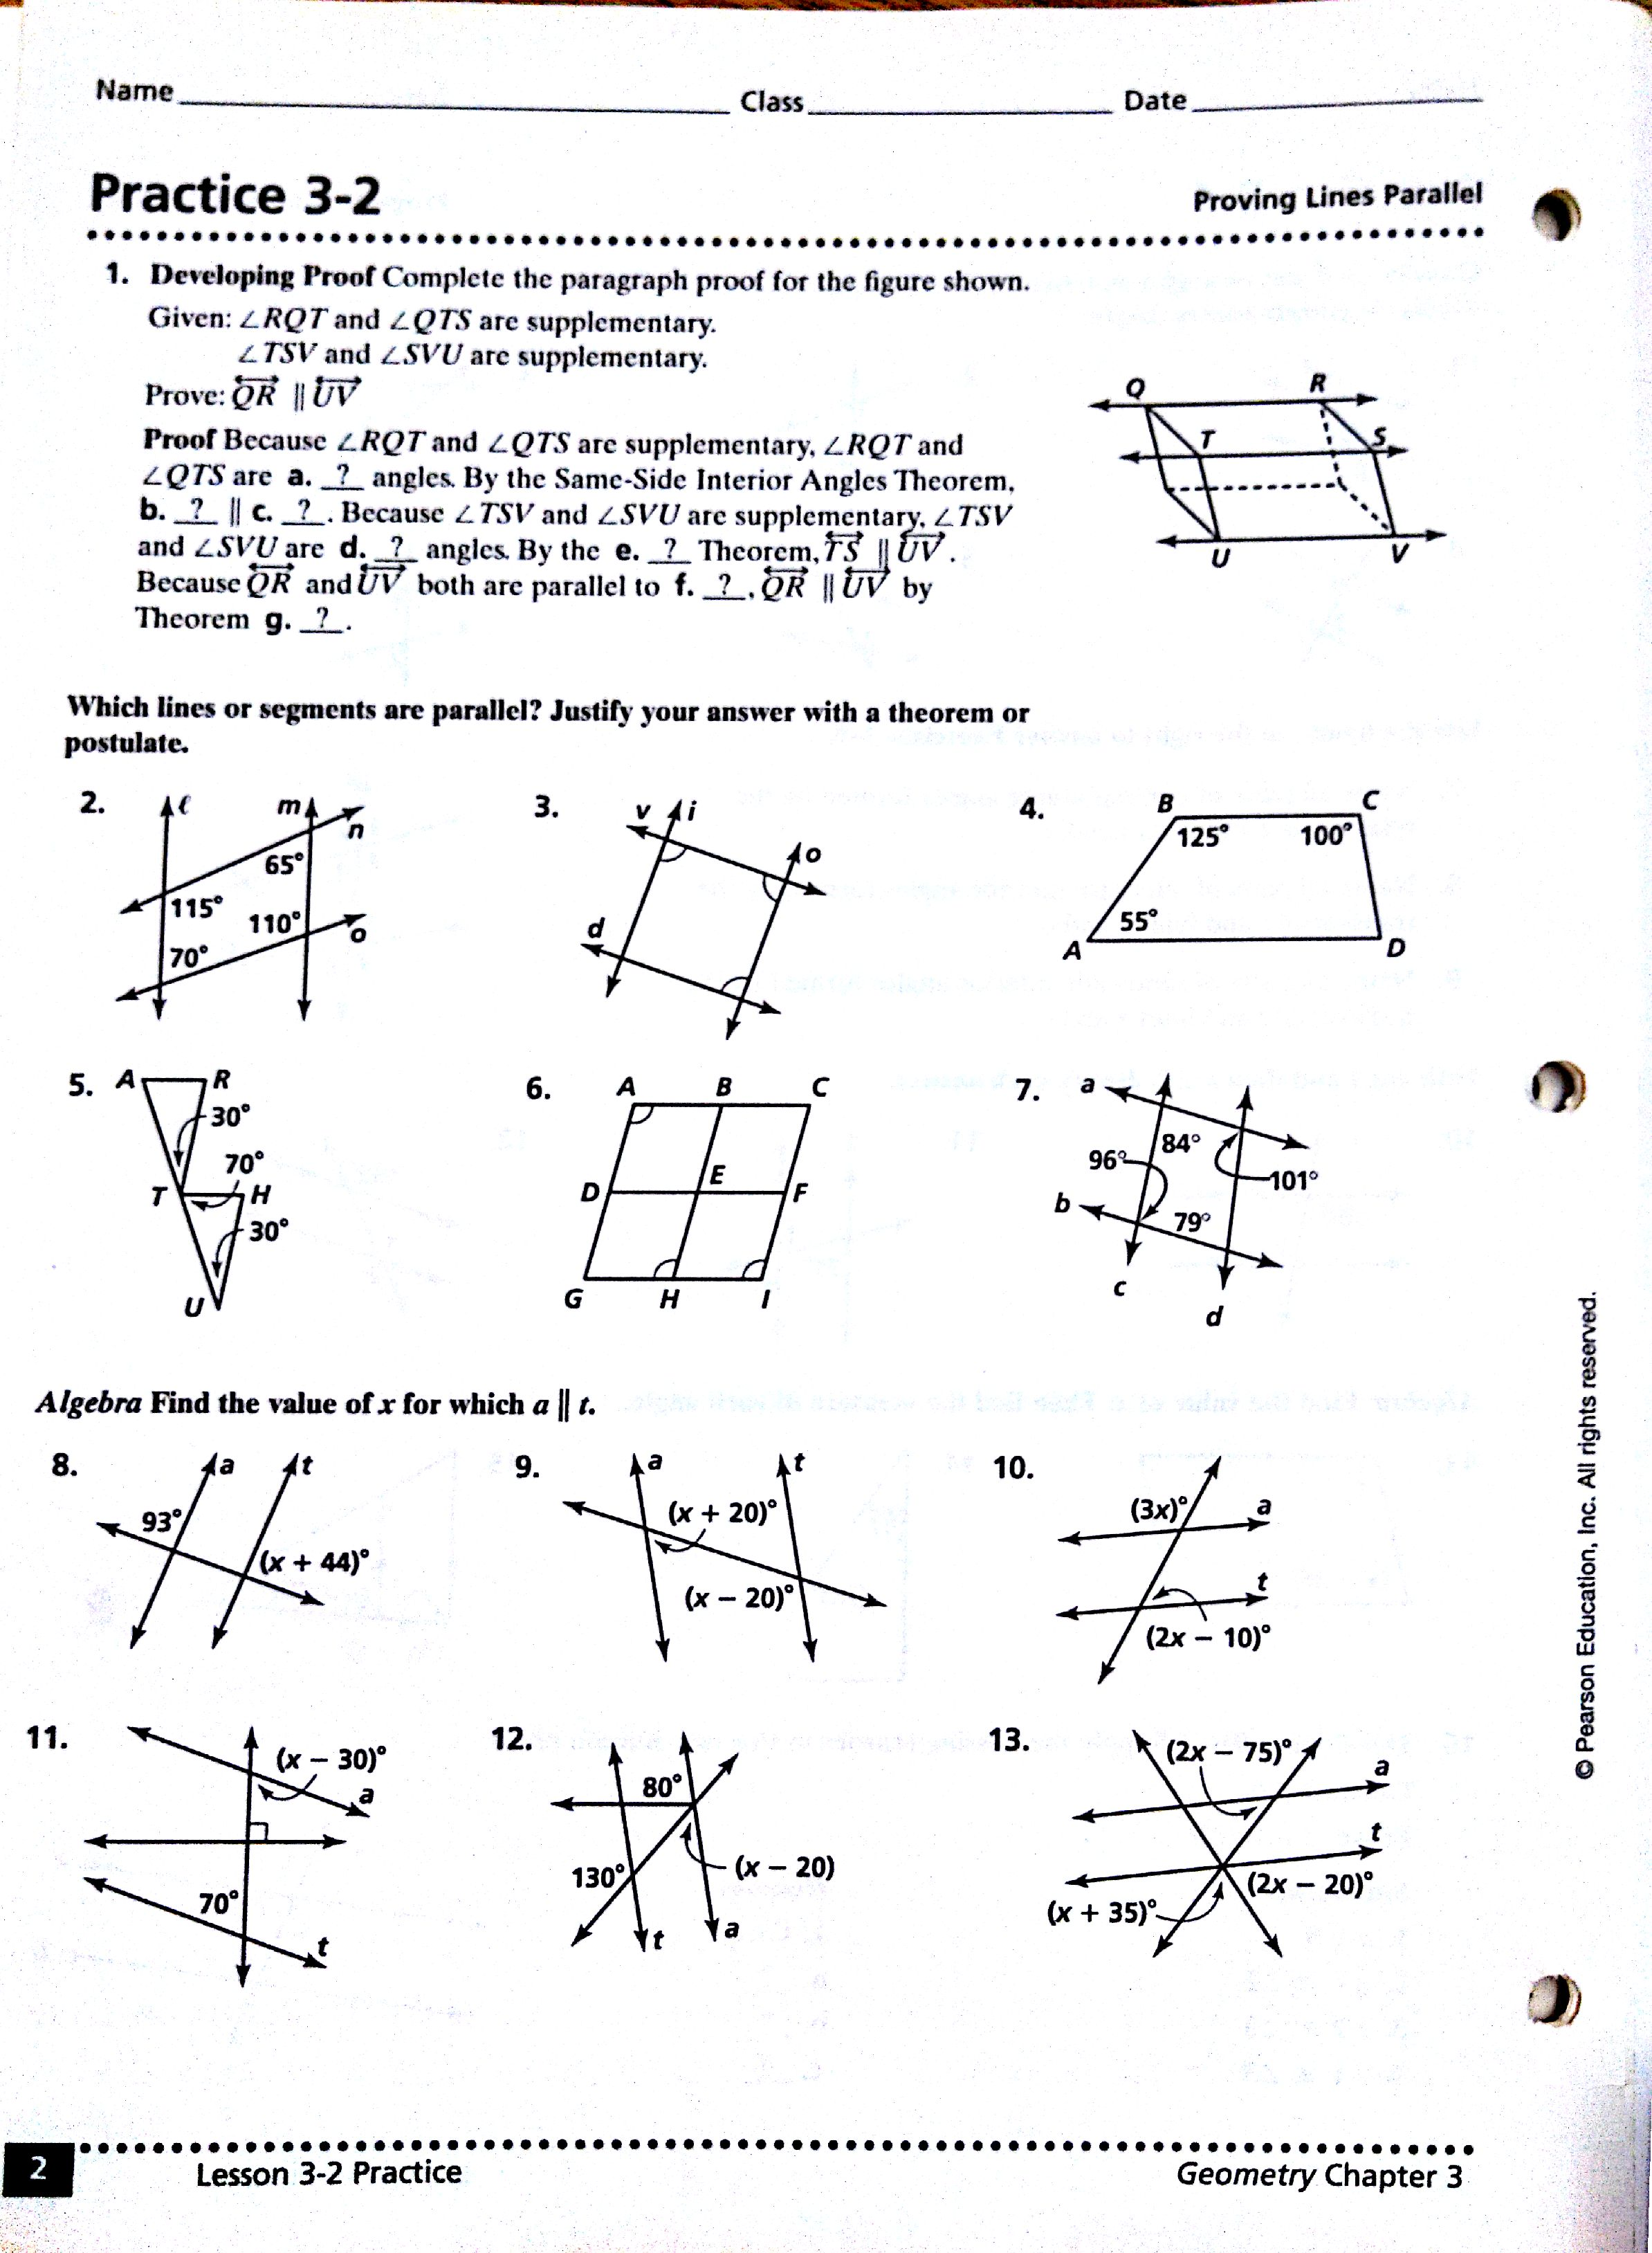 Worksheet Triangle Congruence Worksheet triangle congruence worksheet 1 delwfg com worksheets math with mrs casillas